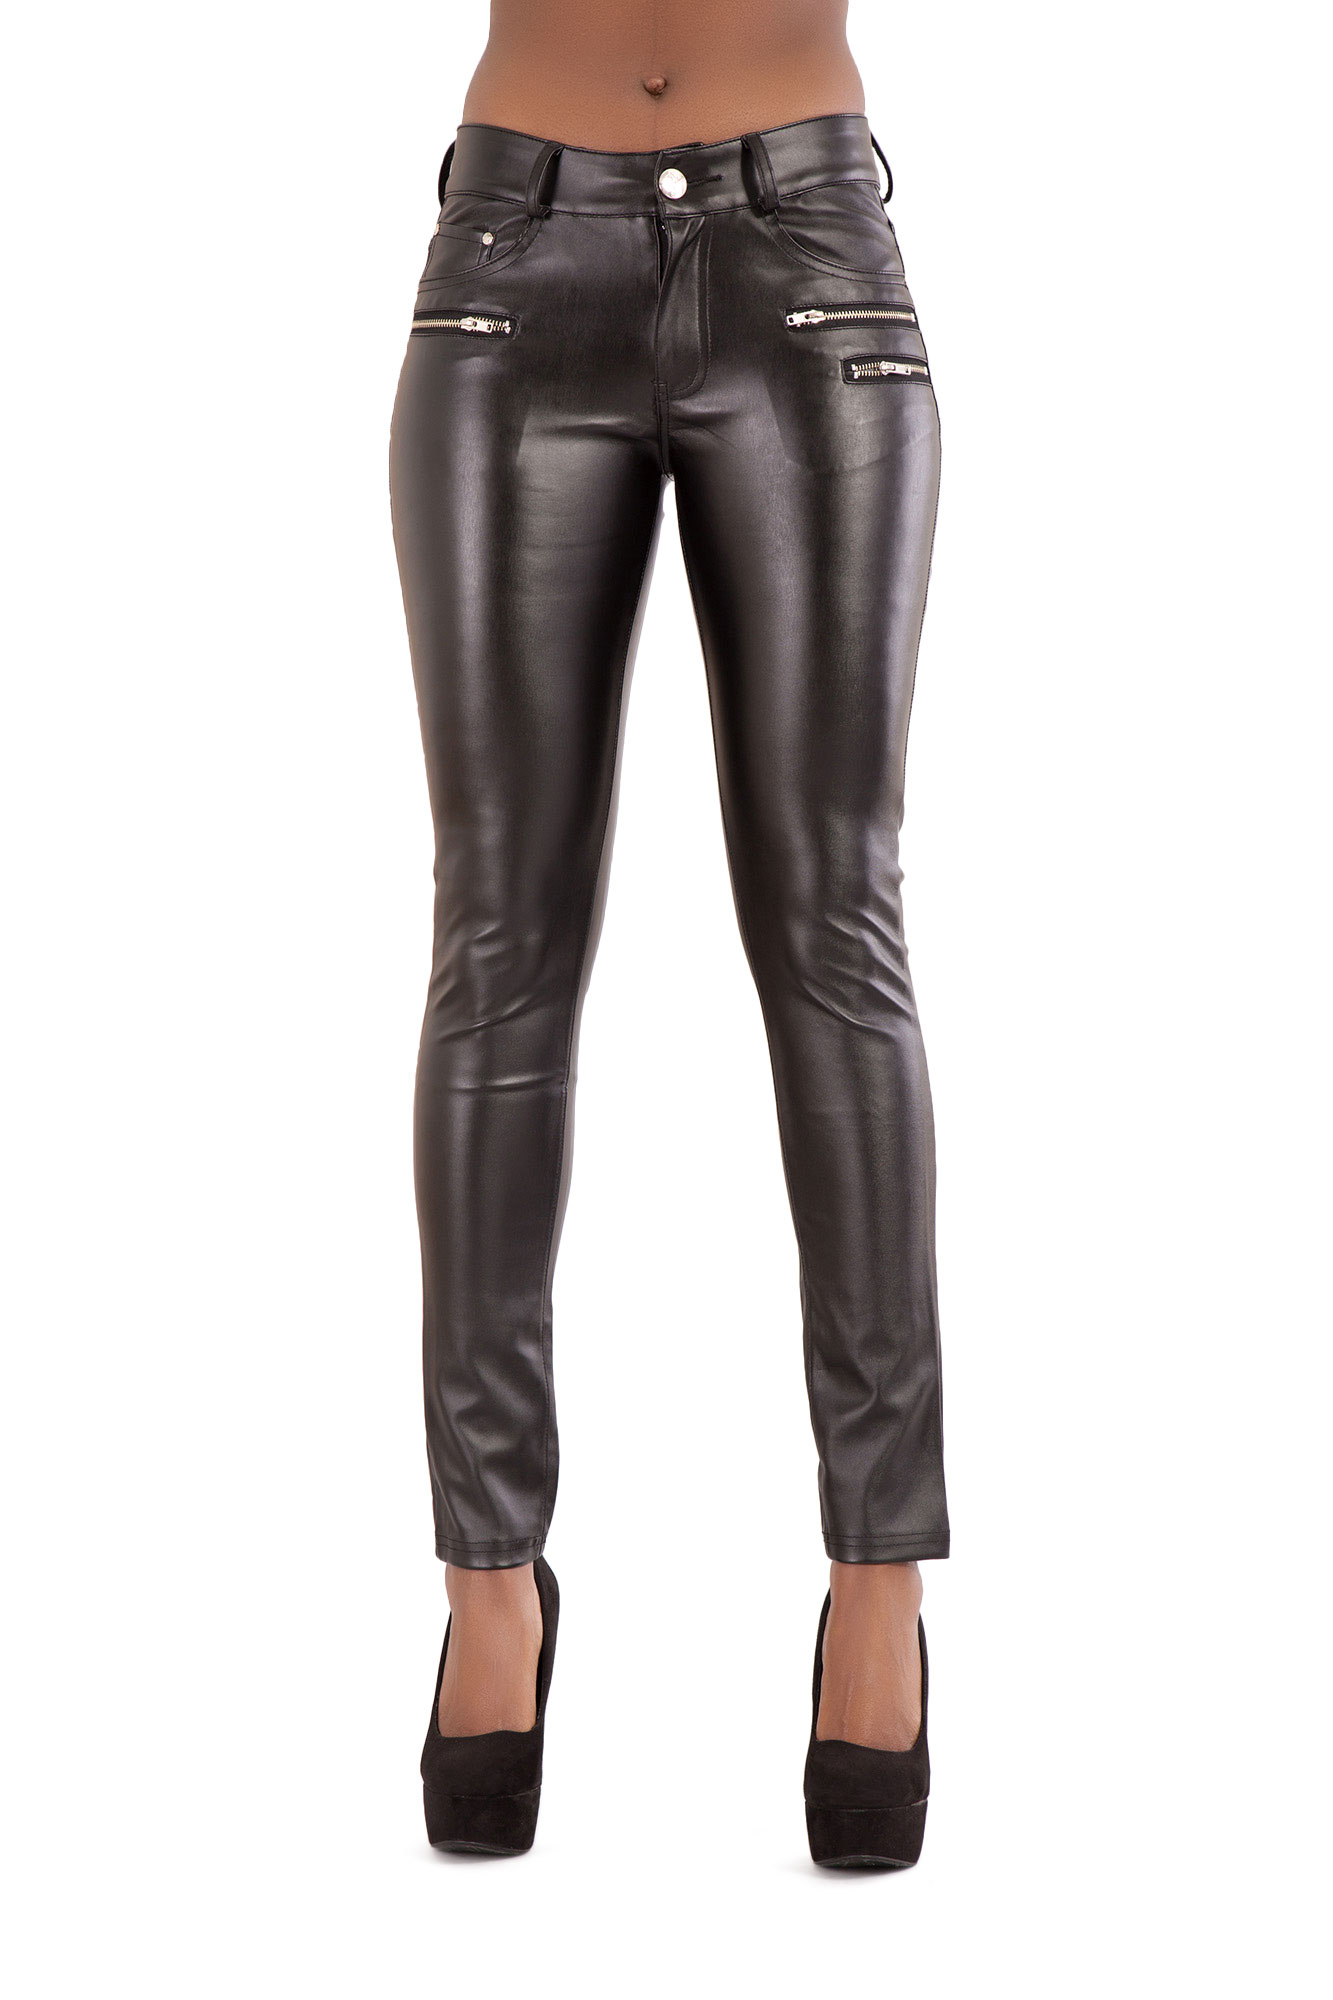 WOMEN'S BLACK PU LEATHER LOOK TROUSERS Breathable Slim ...